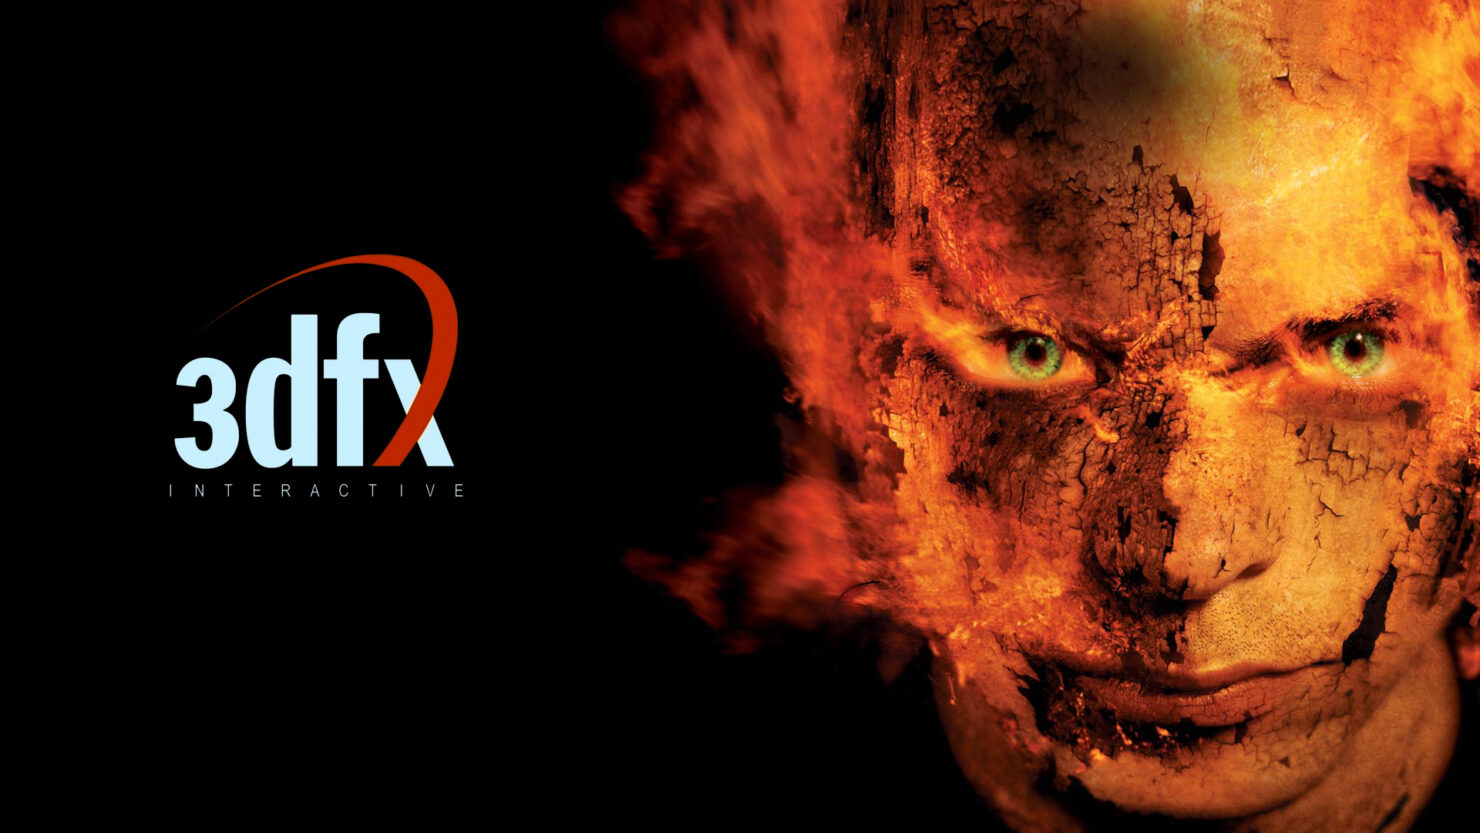 3dfx Interactive Acquired By Jansen Products, Returning After 20 Years With Major GPU Announcements This Week